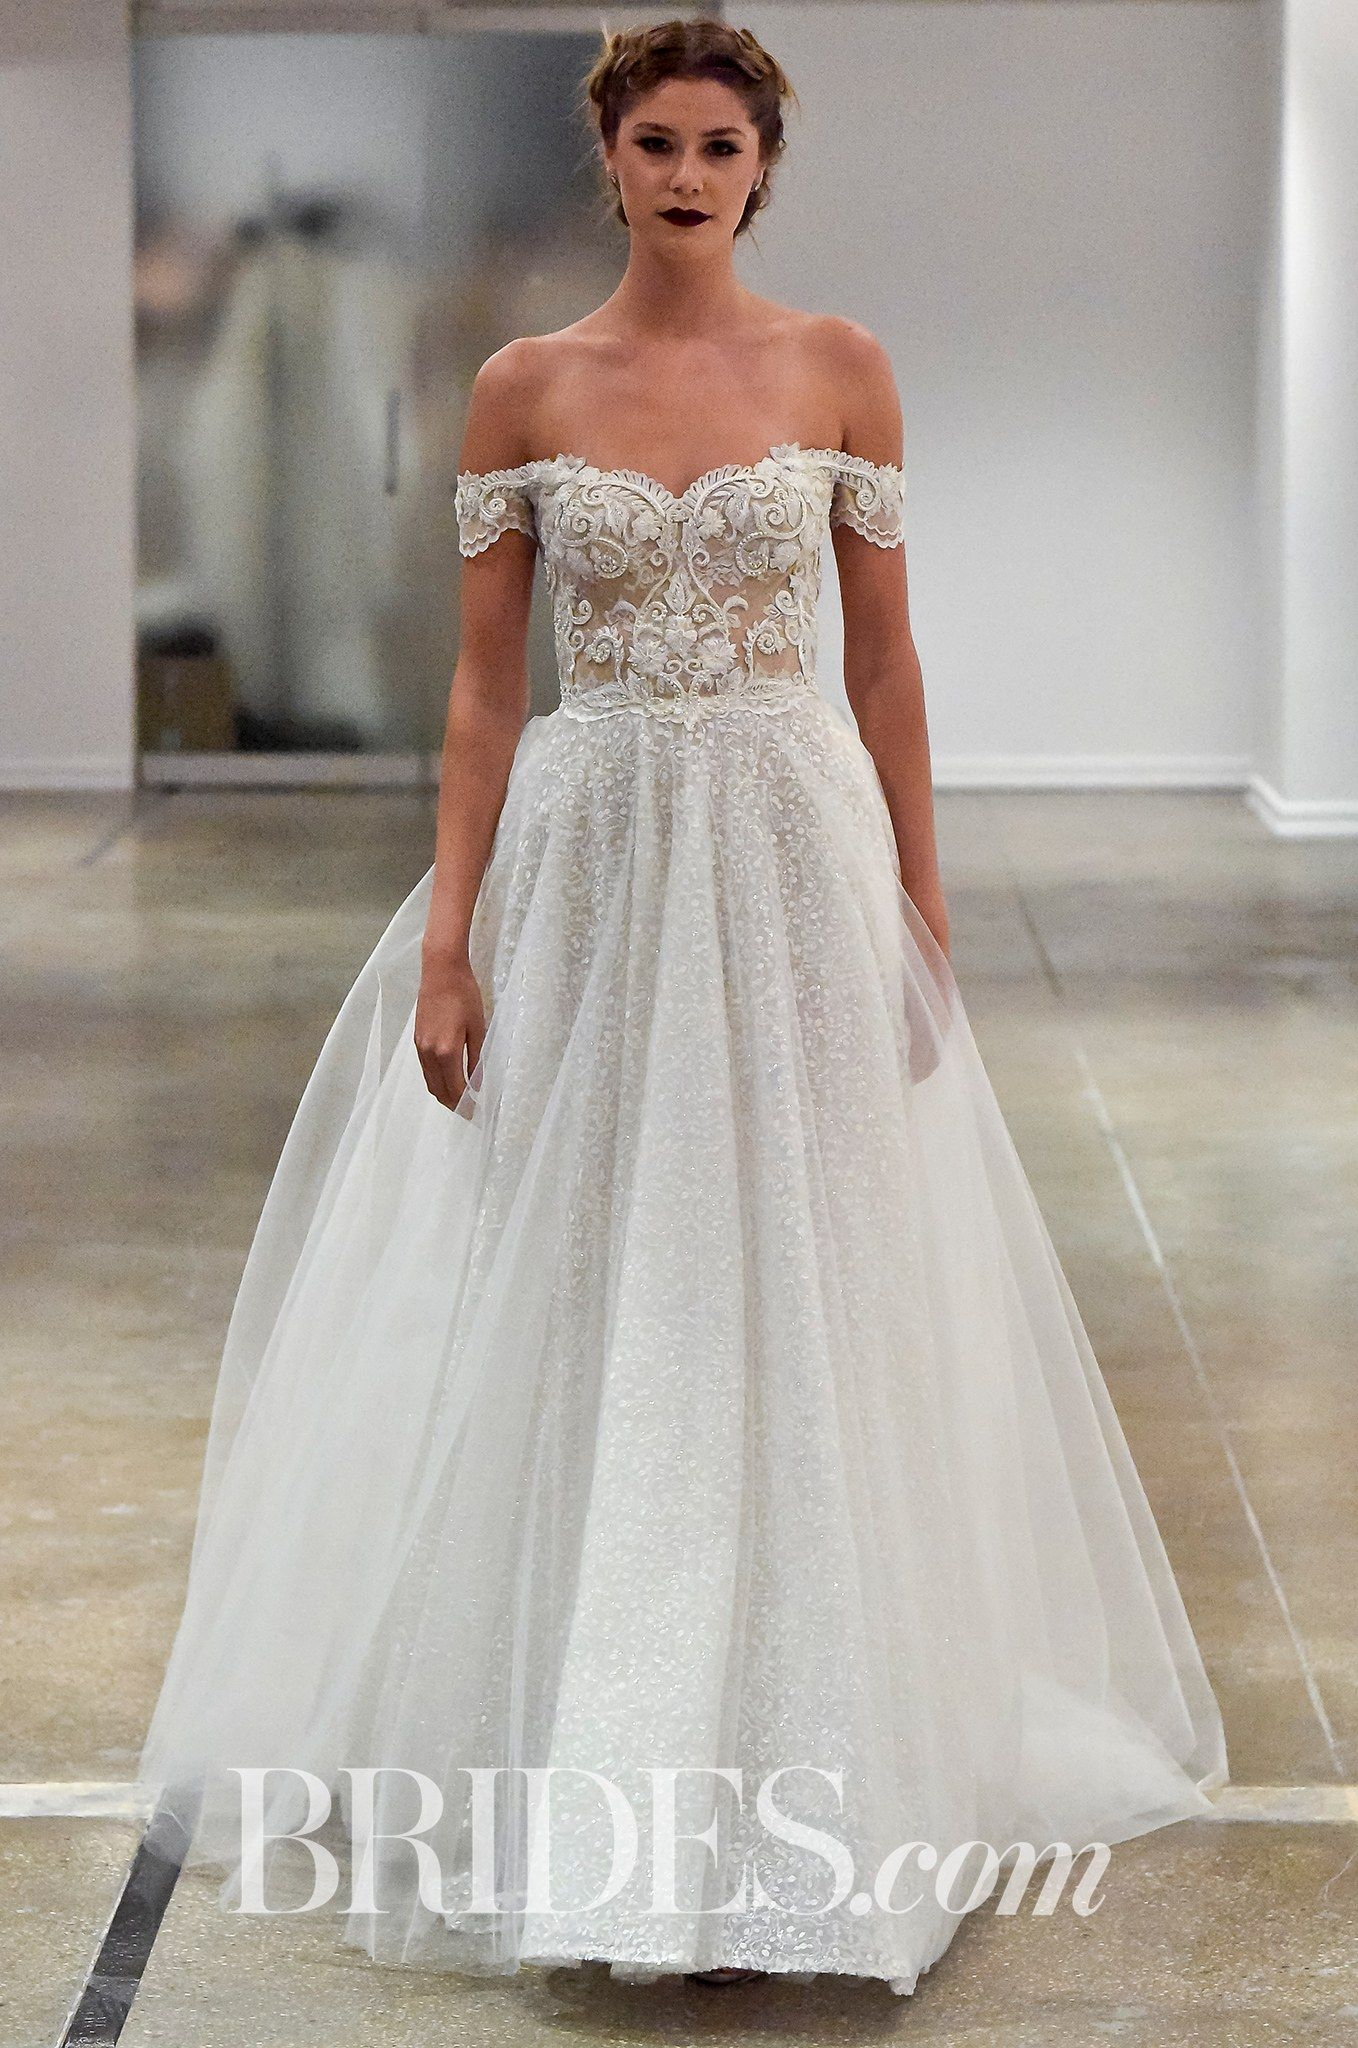 Spring 2018 Wedding Dress & Bridal Gowns Trends Brides